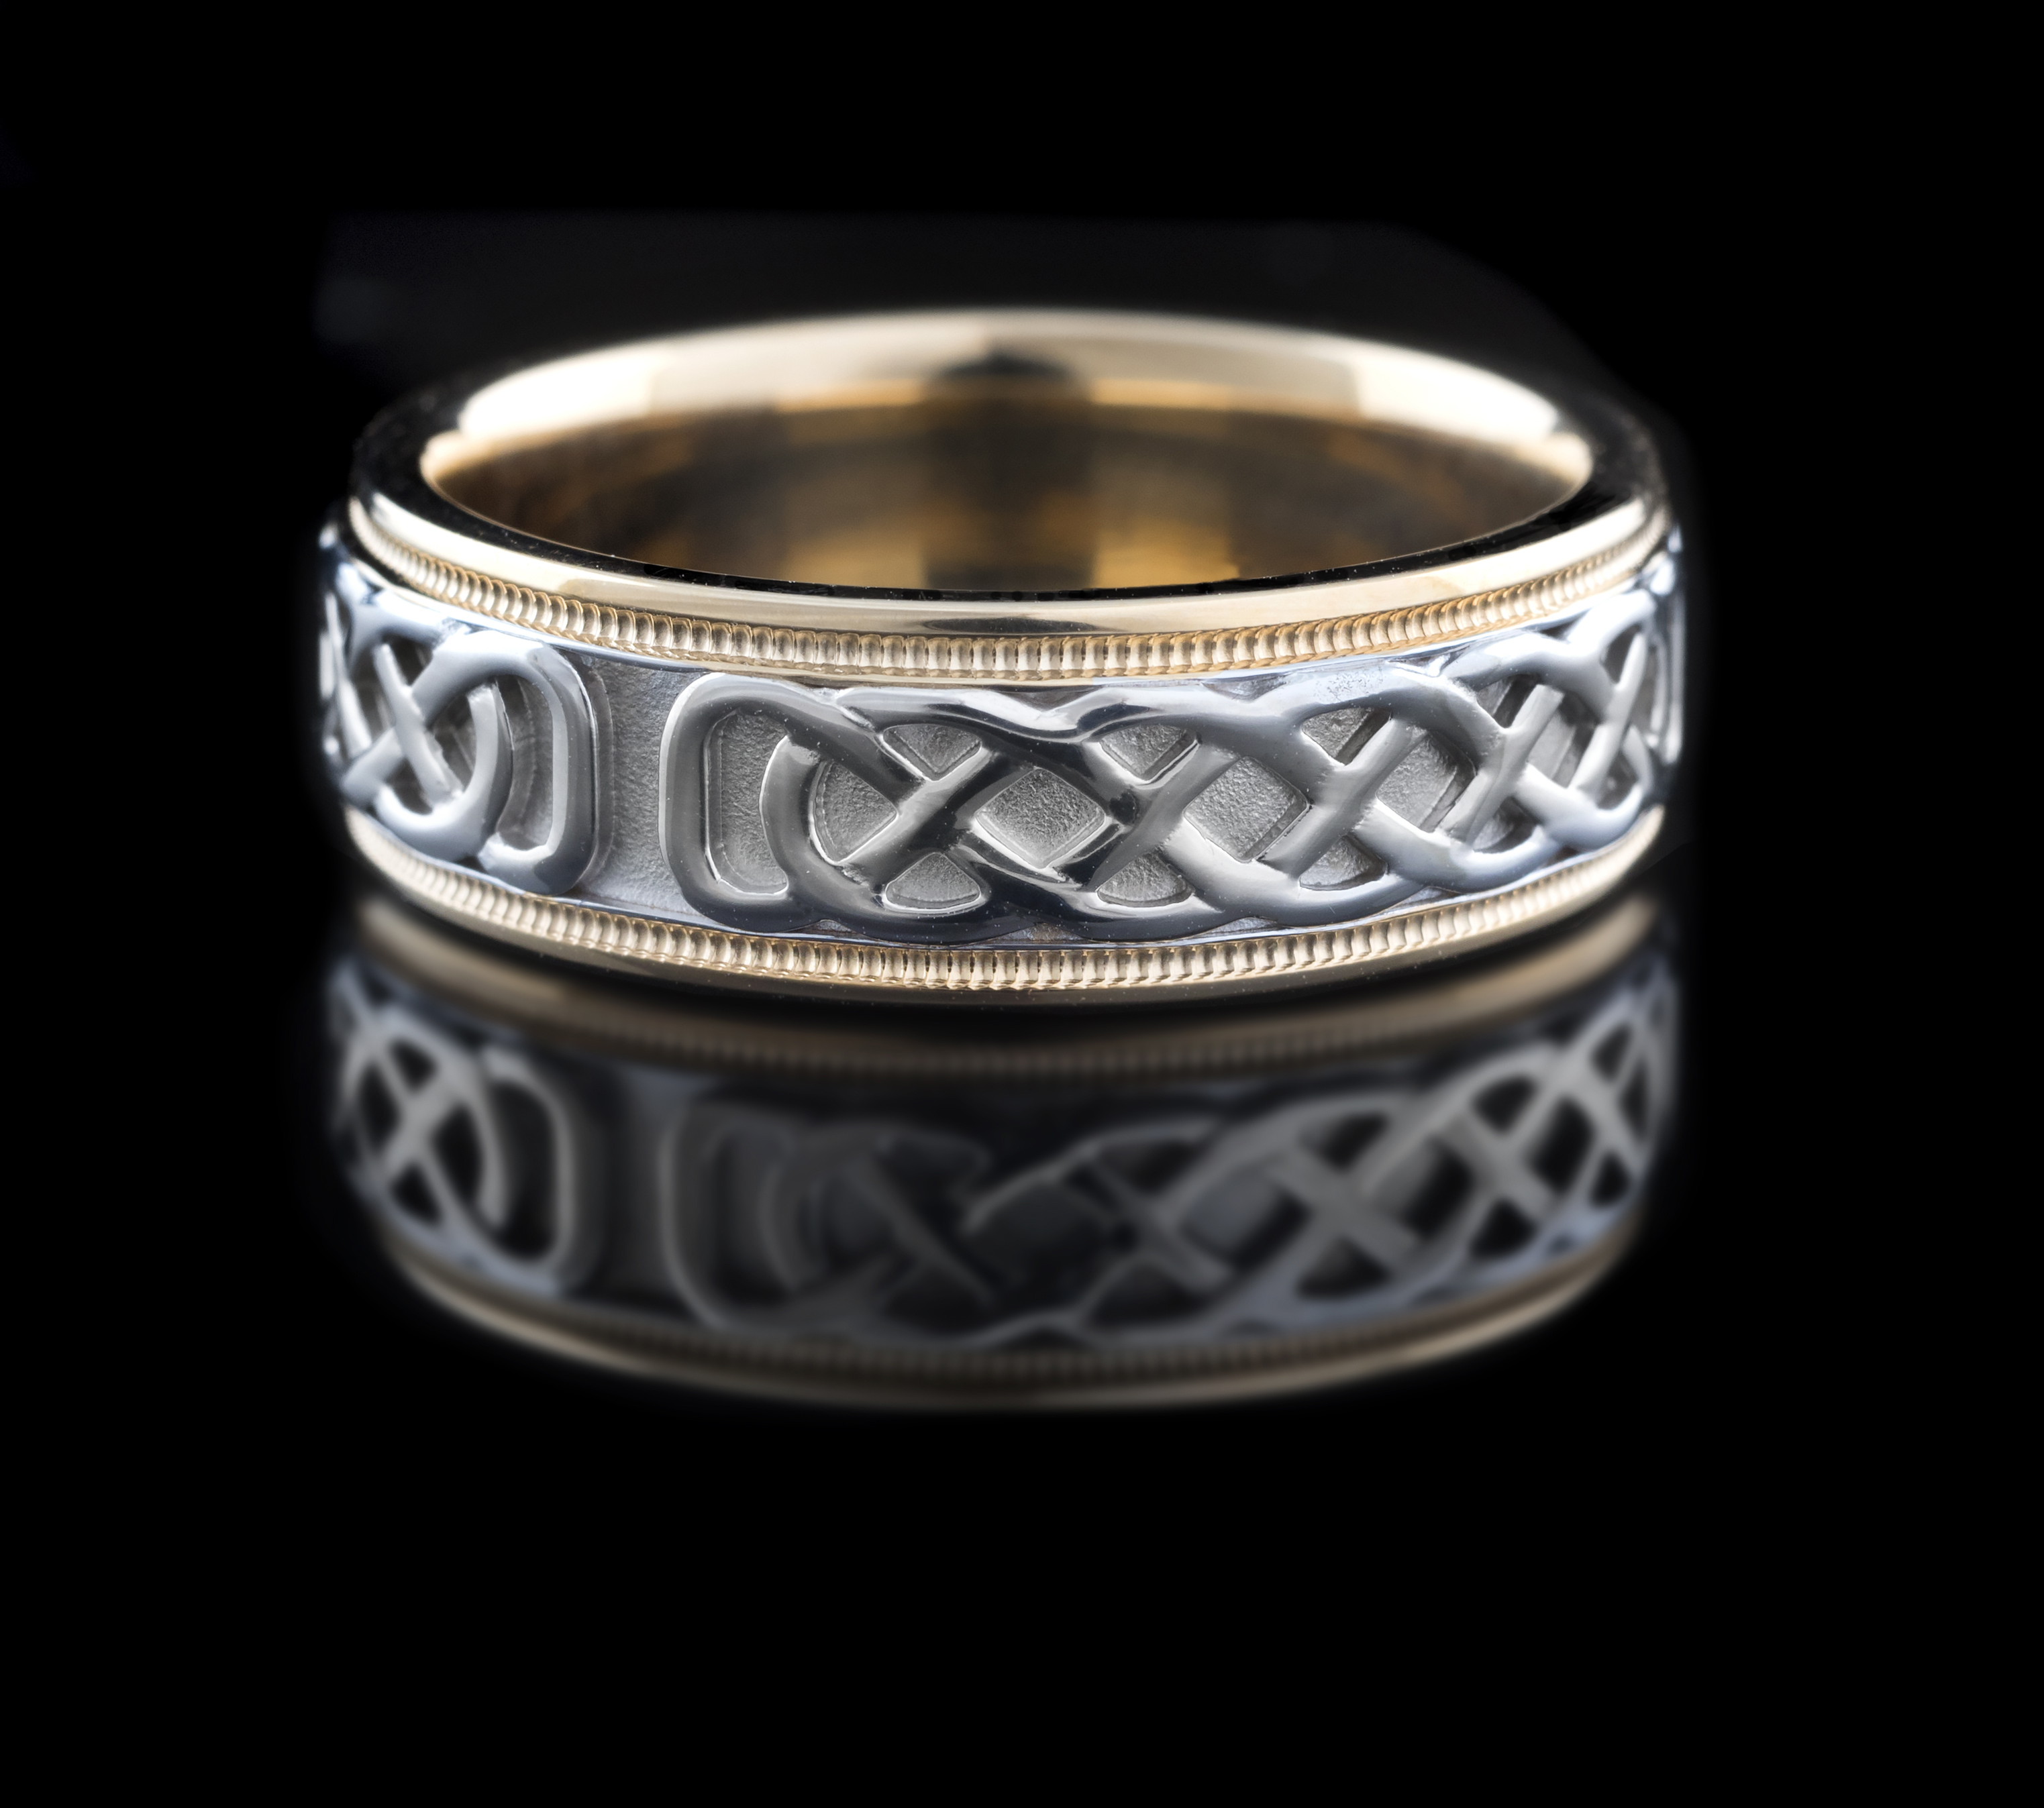 rings women jerezwine incredible for catholic jewelry men religious and